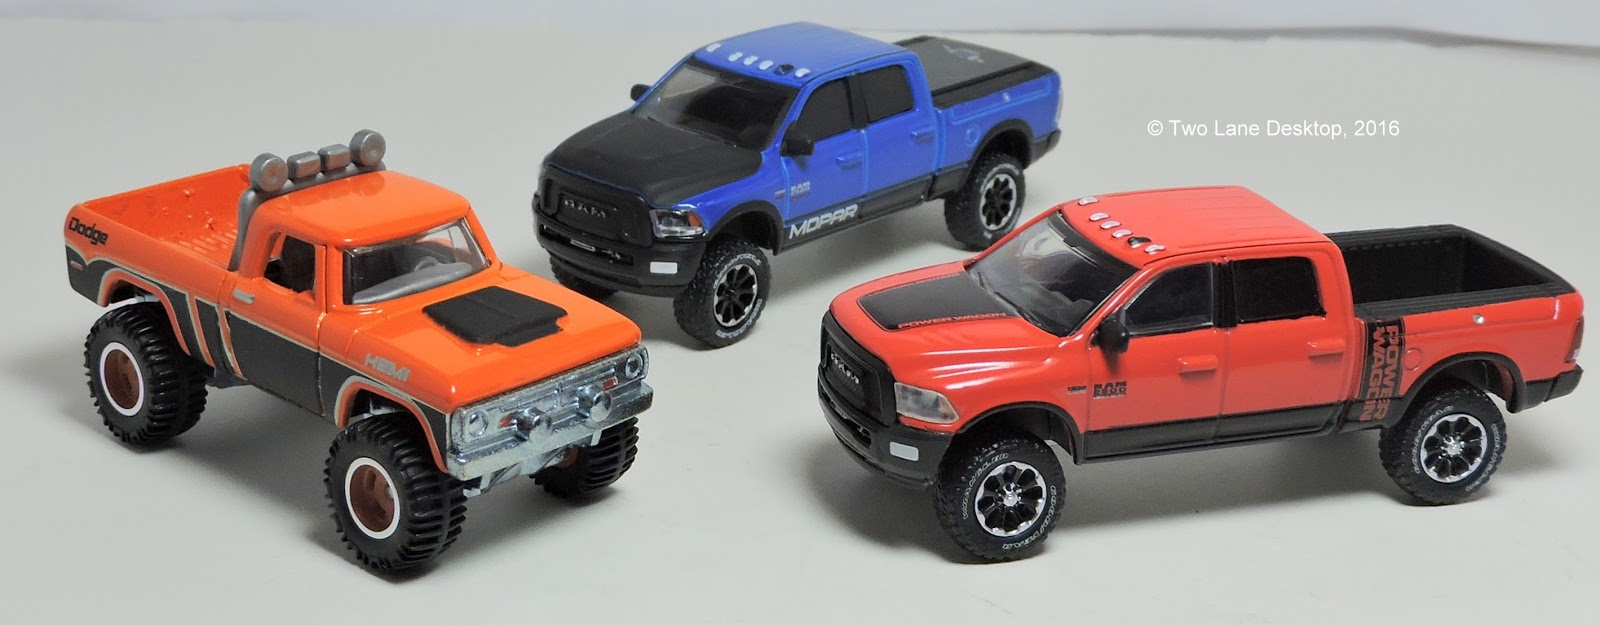 two lane desktop hot wheels 1970 and greenlight 2017 dodge ram power wagon. Cars Review. Best American Auto & Cars Review